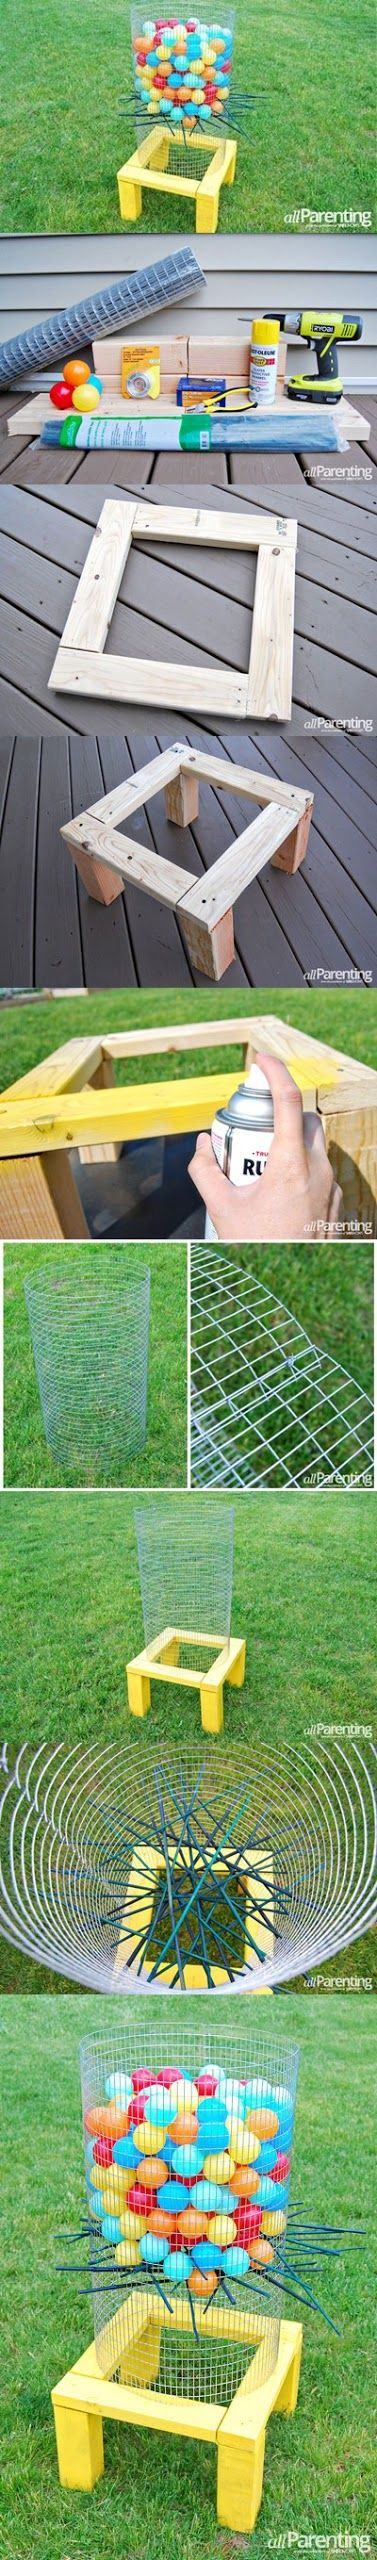 DIY BACKYARD KER-PLUNK GAME